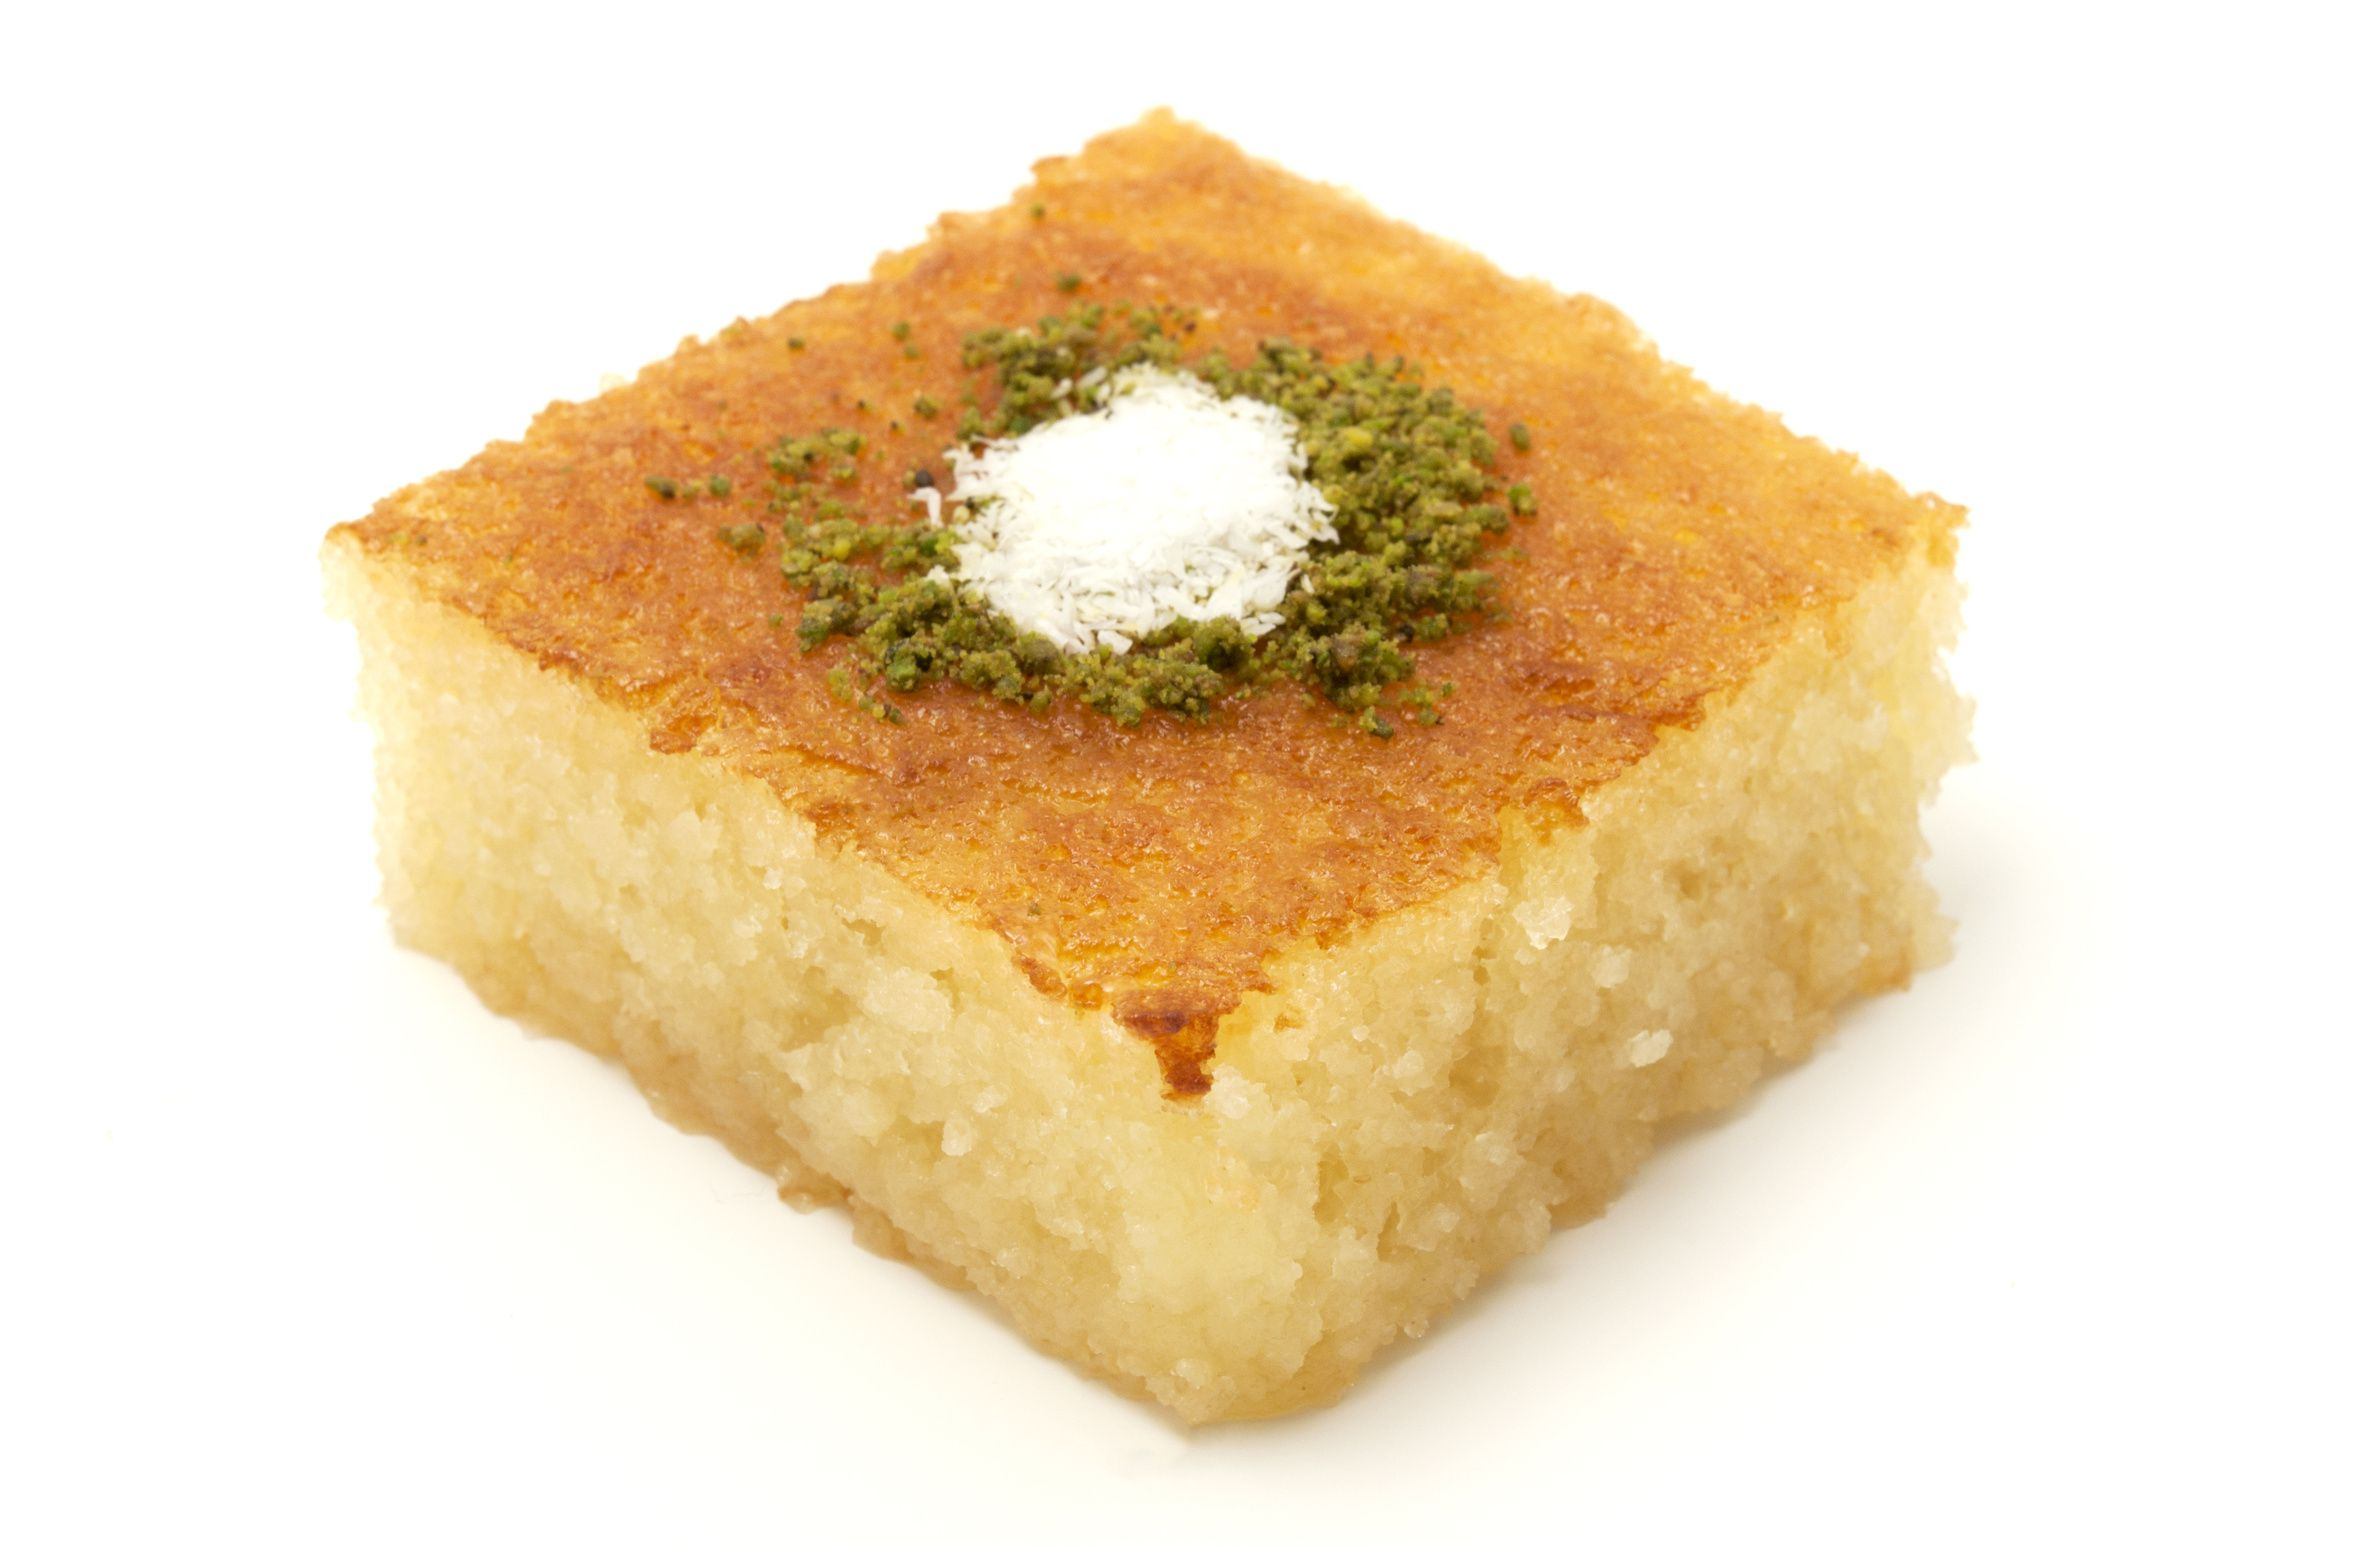 Turkish Revani: Semolina Cake Steeped In Syrup